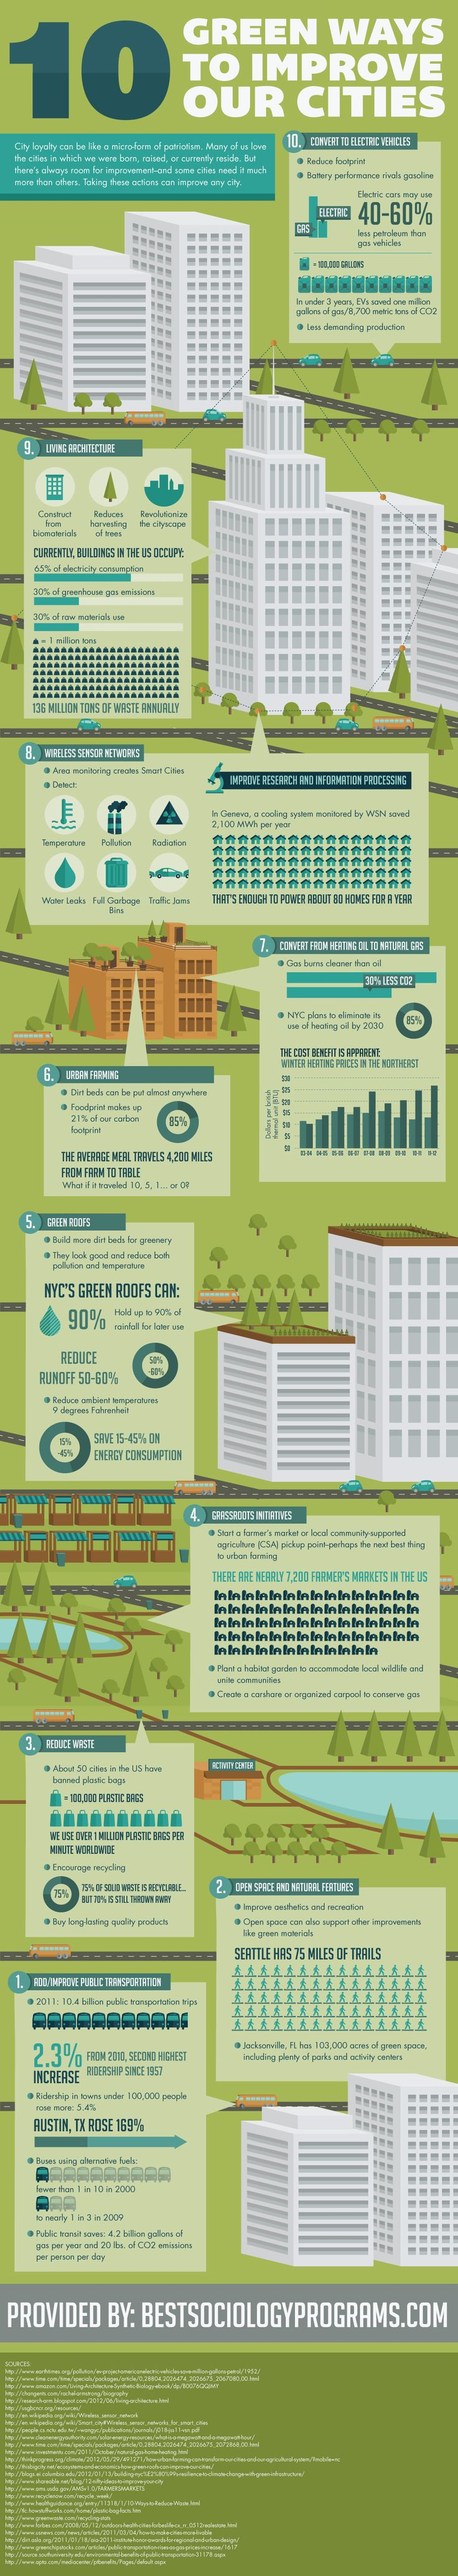 Green Ways to Improve Our Cities #urbanfarm #greencity #sustainable